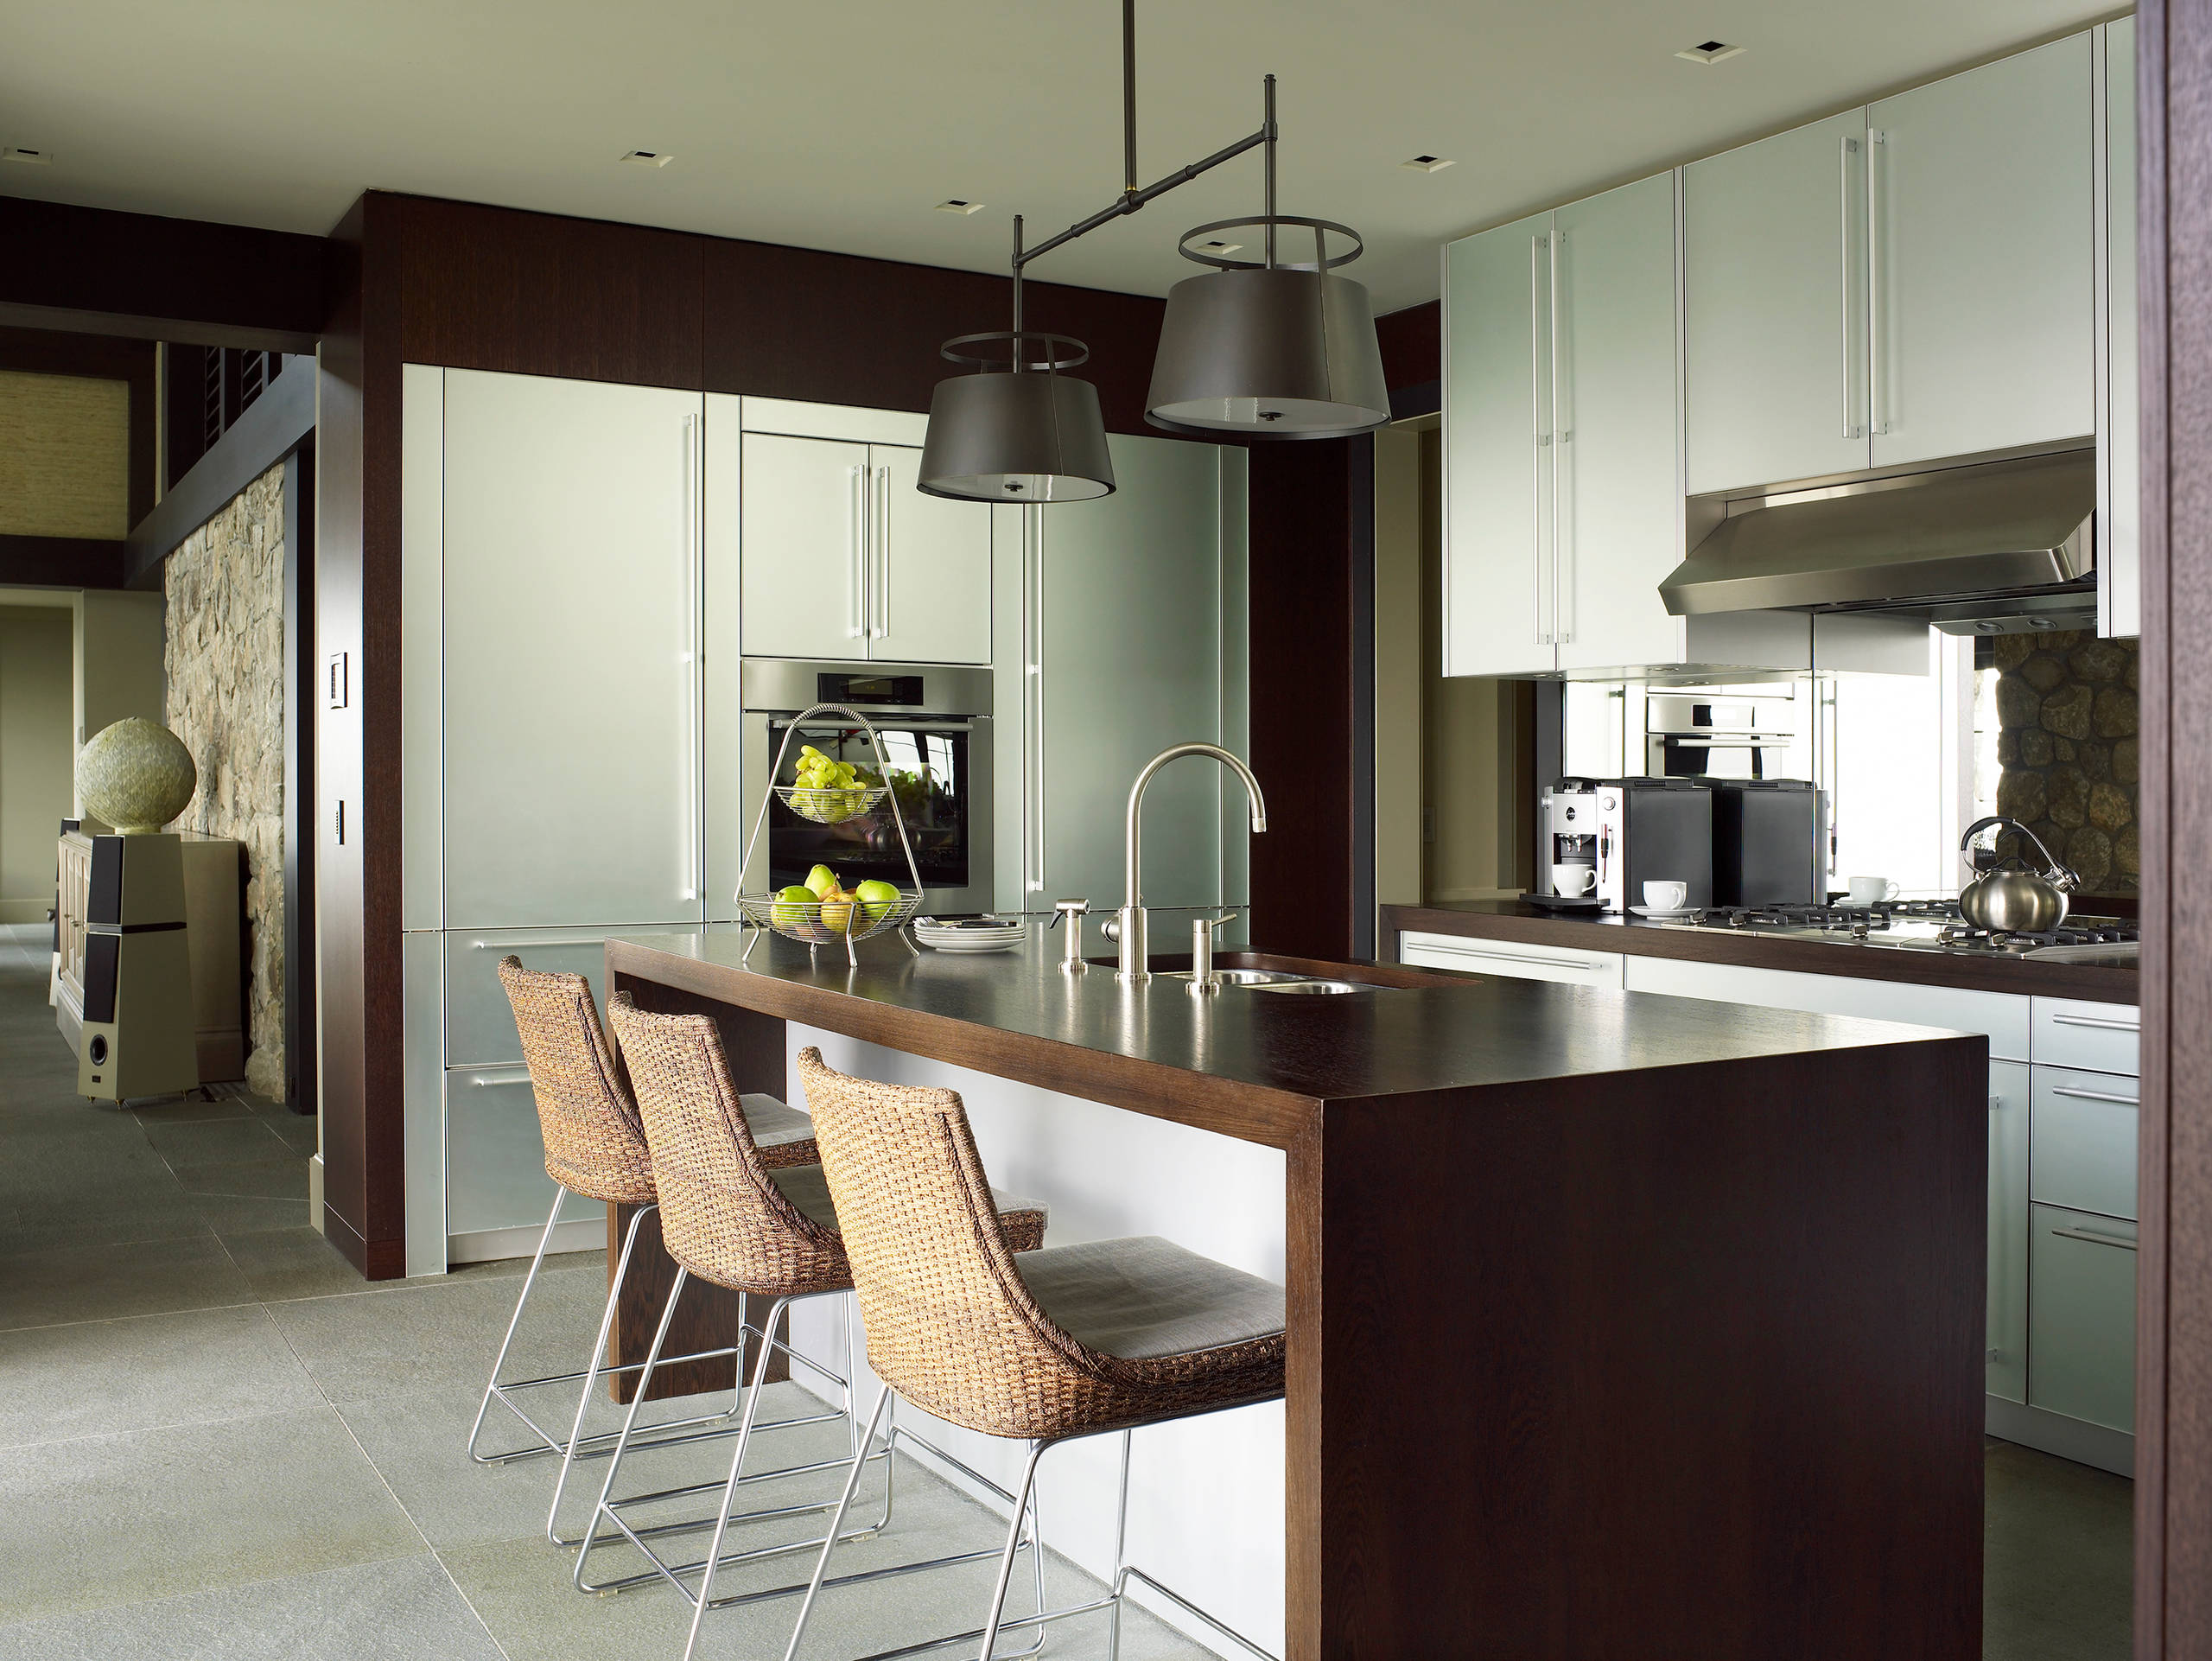 Archi In Casa Moderna 75 beautiful green kitchen with stainless steel cabinets